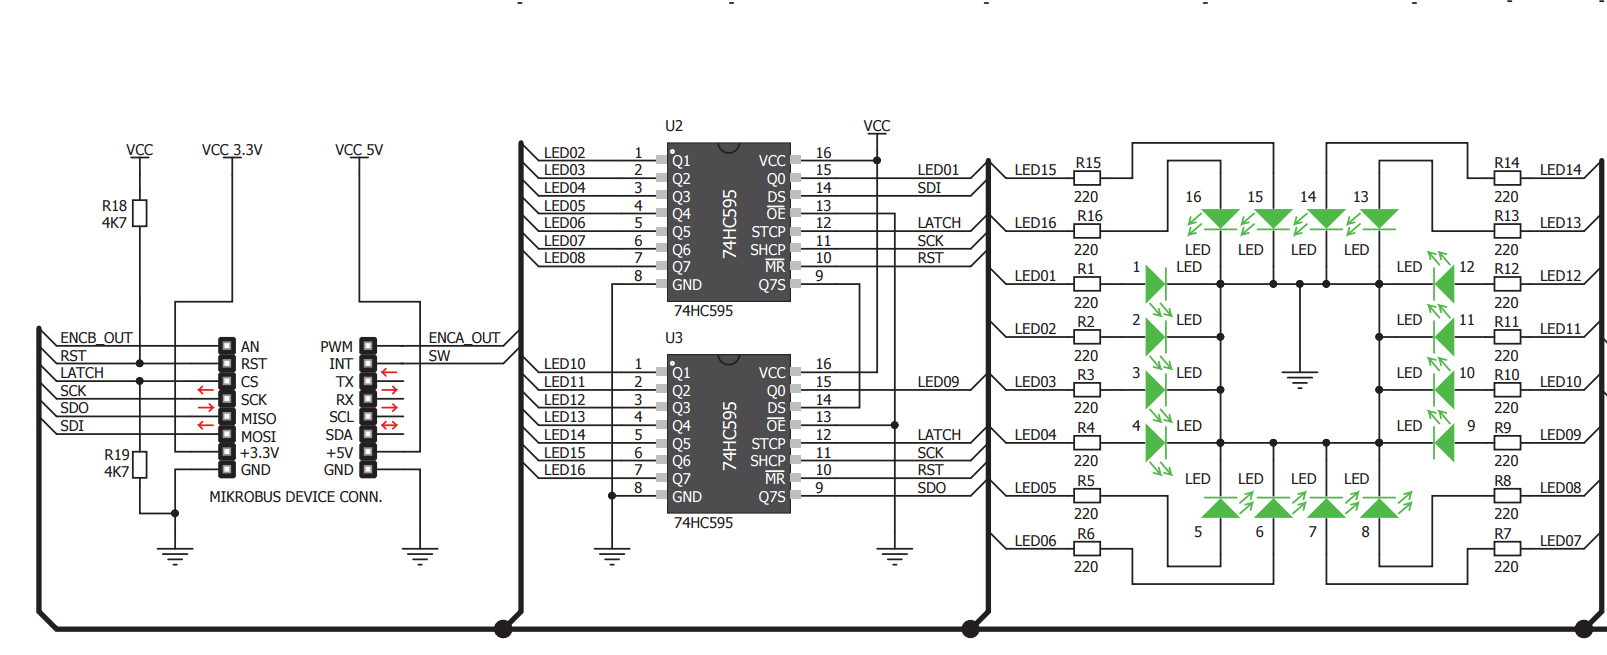 Leds And Bit Shifting A Shift Register Tutorial T Flip Flop Circuit Diagram